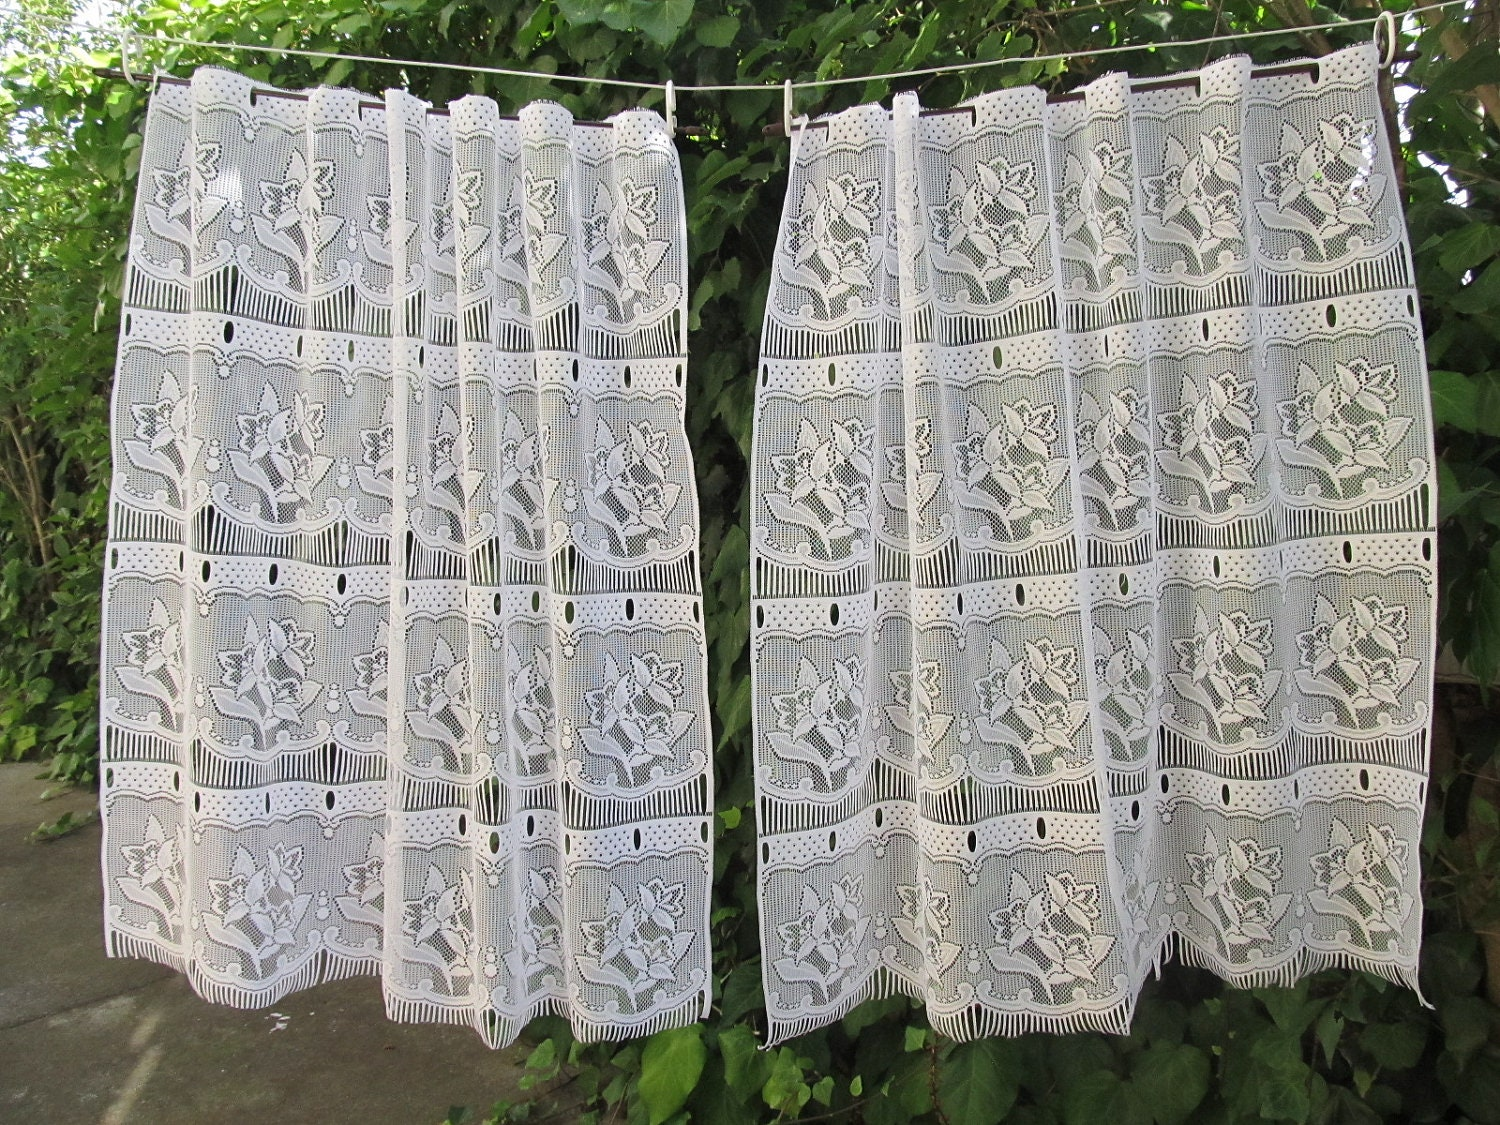 vintage cafe curtain french panels lace by HatchedinFrance on Etsy